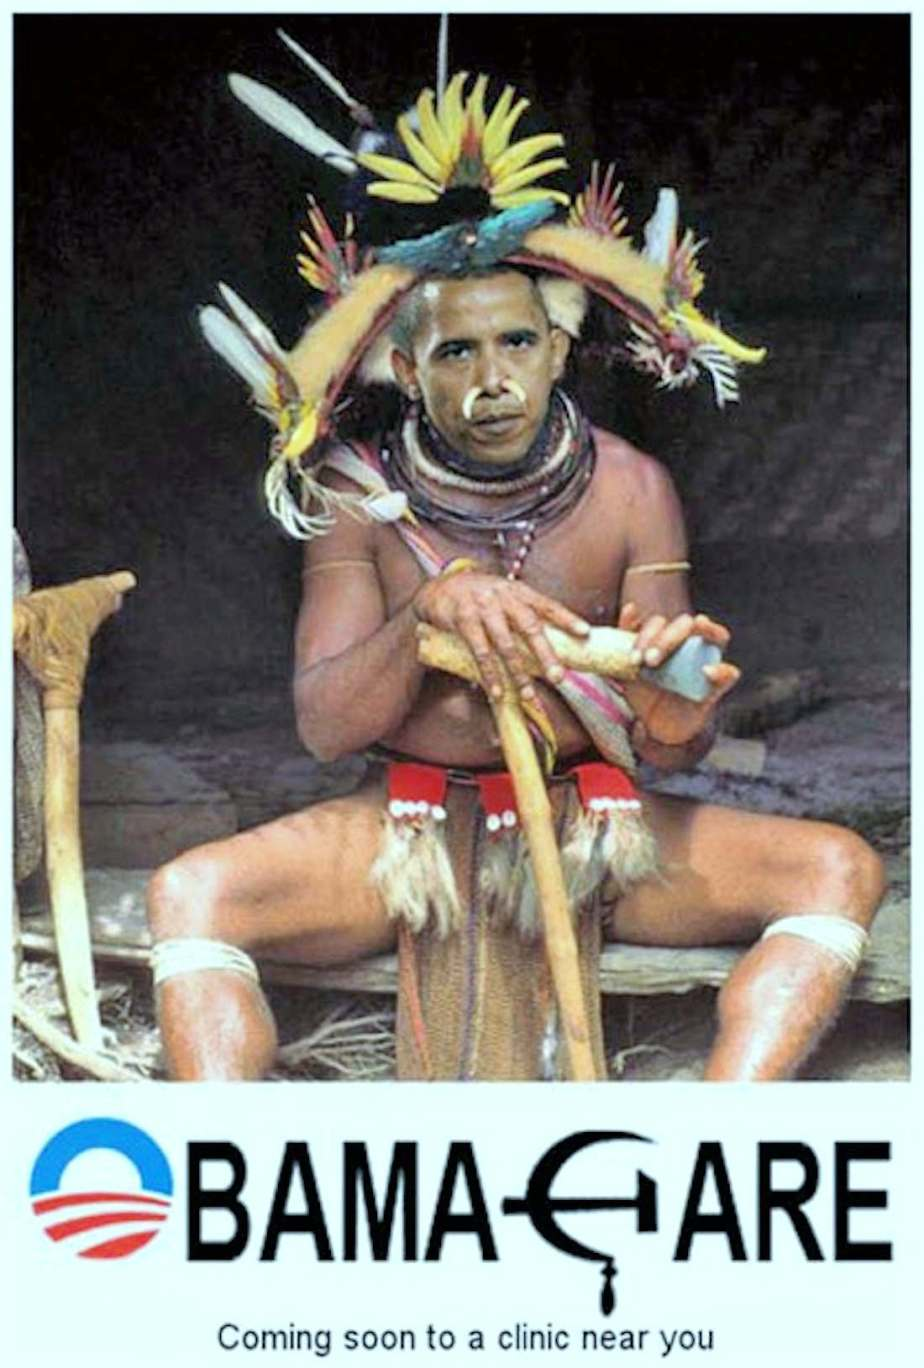 Racist image of President Obama as a witch doctor